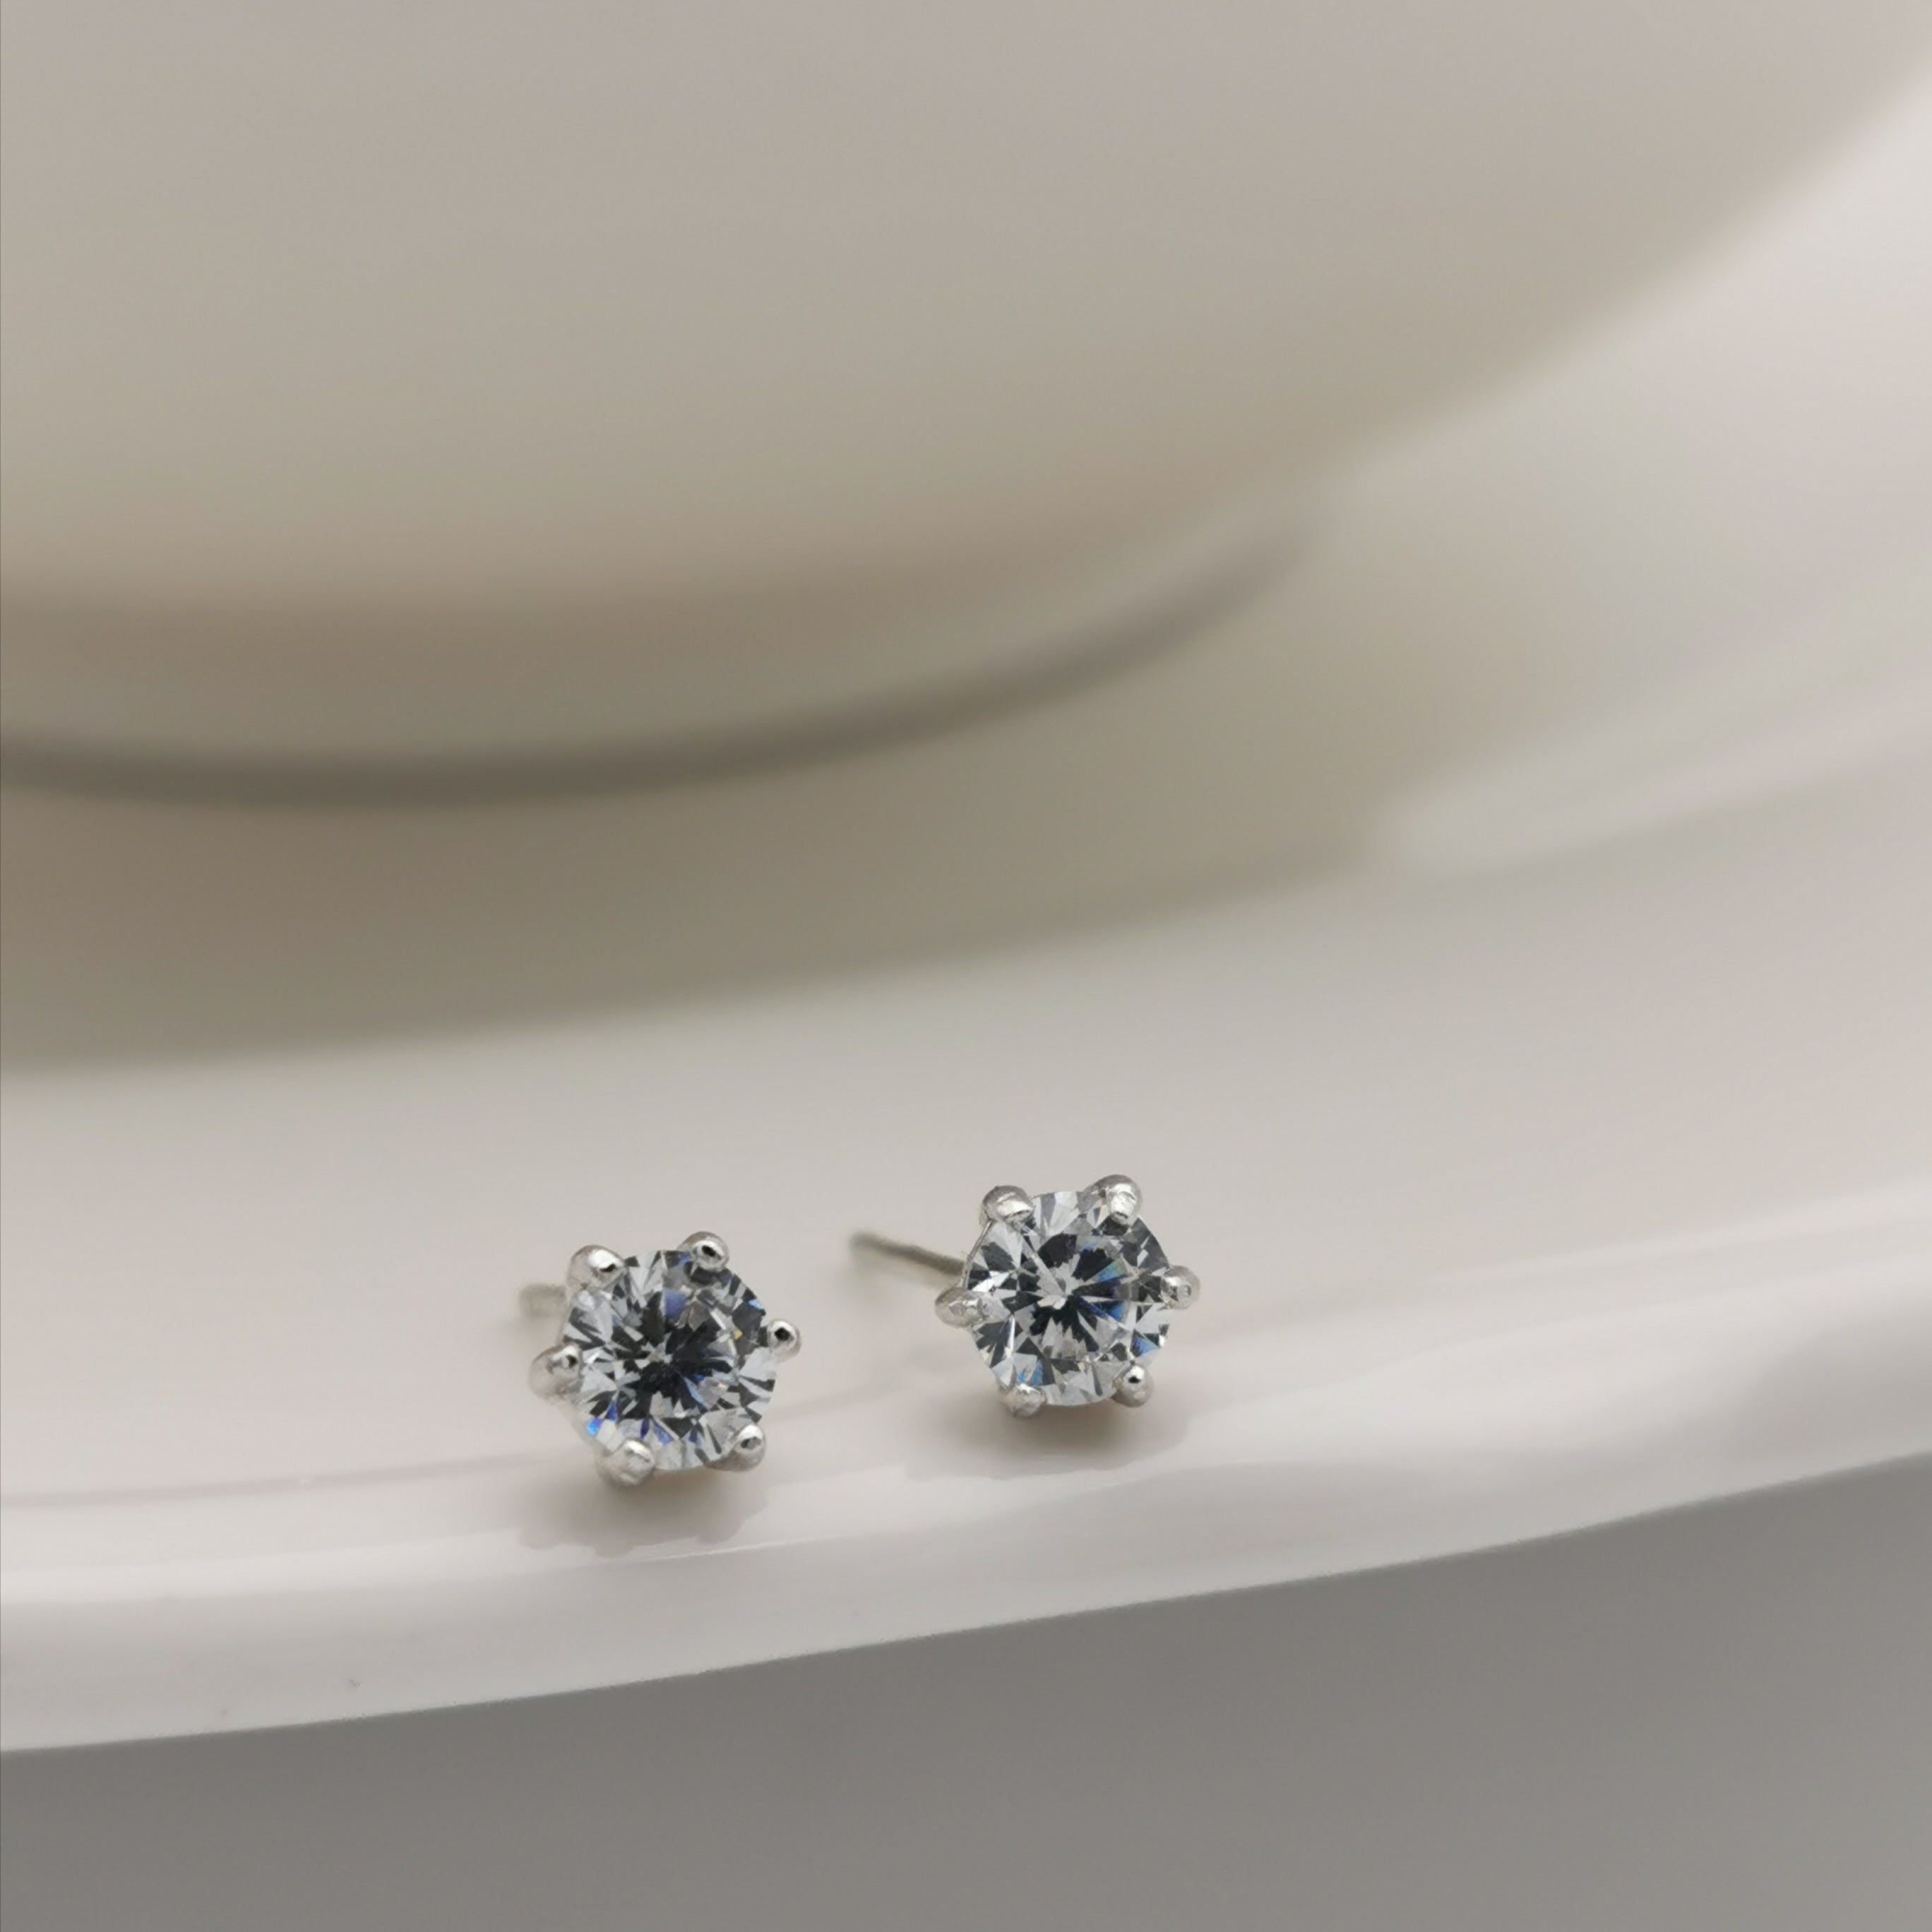 14ct gold plated sterling silver cubic zirconia stud